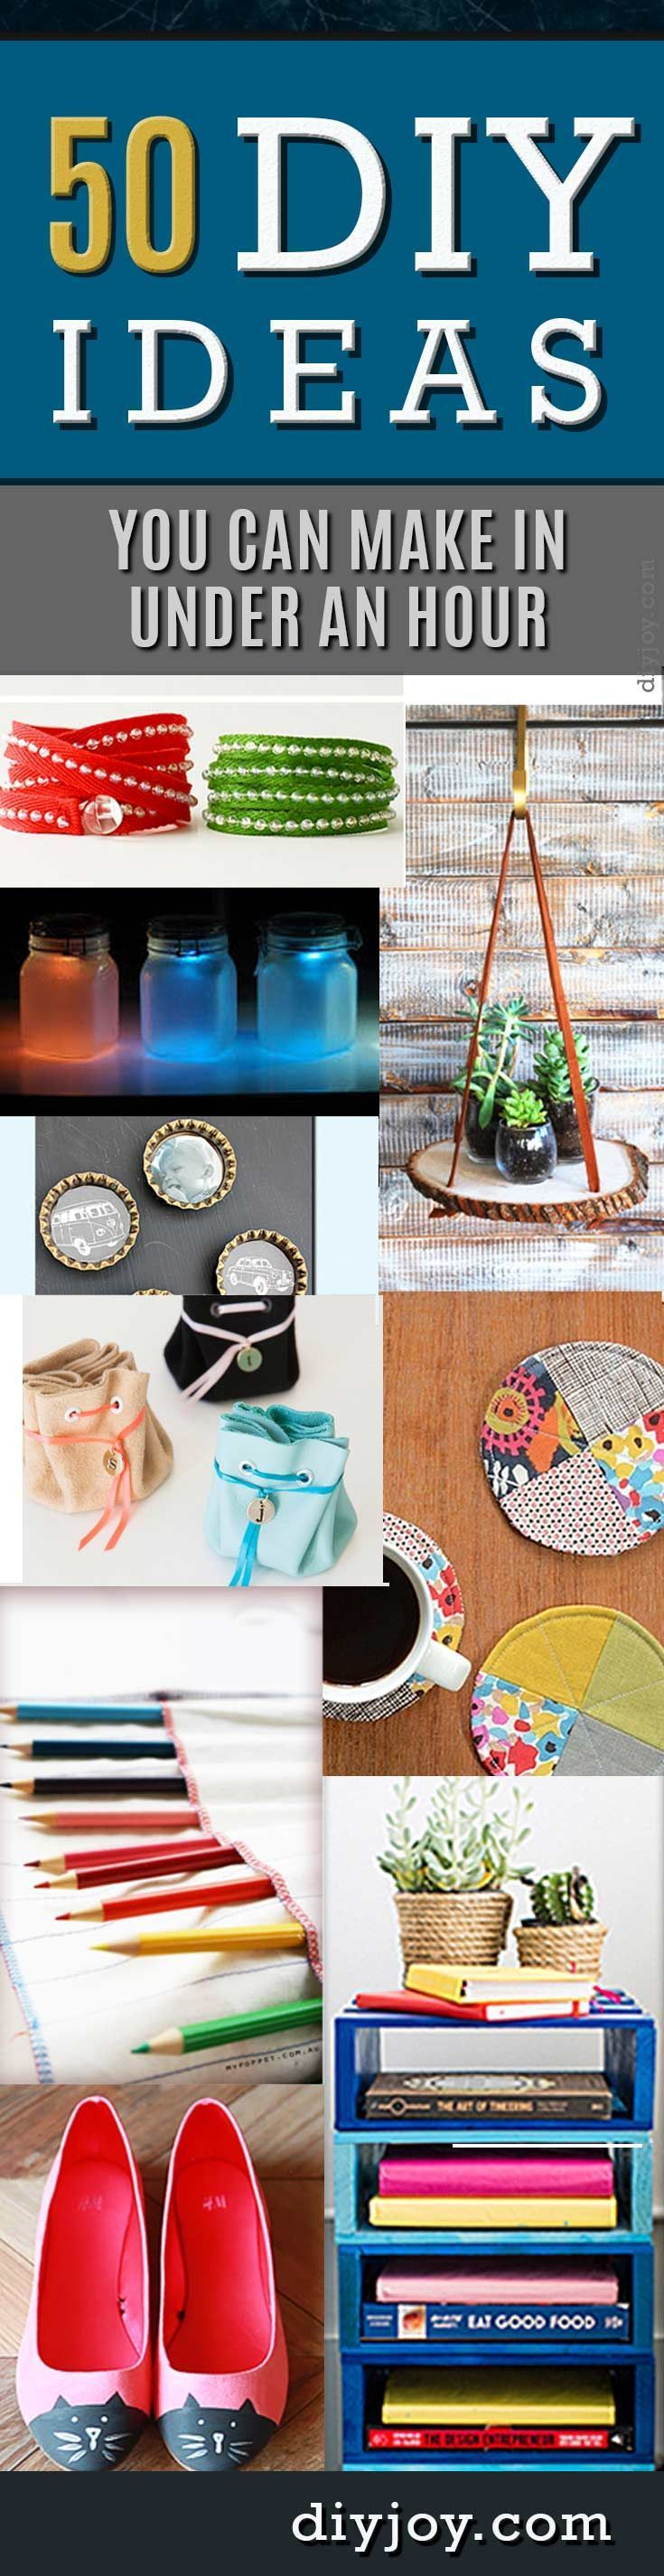 Quick DIY Projects and Easy, Fast Crafts Ideas You Can Make in Under an Hour - Fast DIY Gifts, Home Decor and Fashion